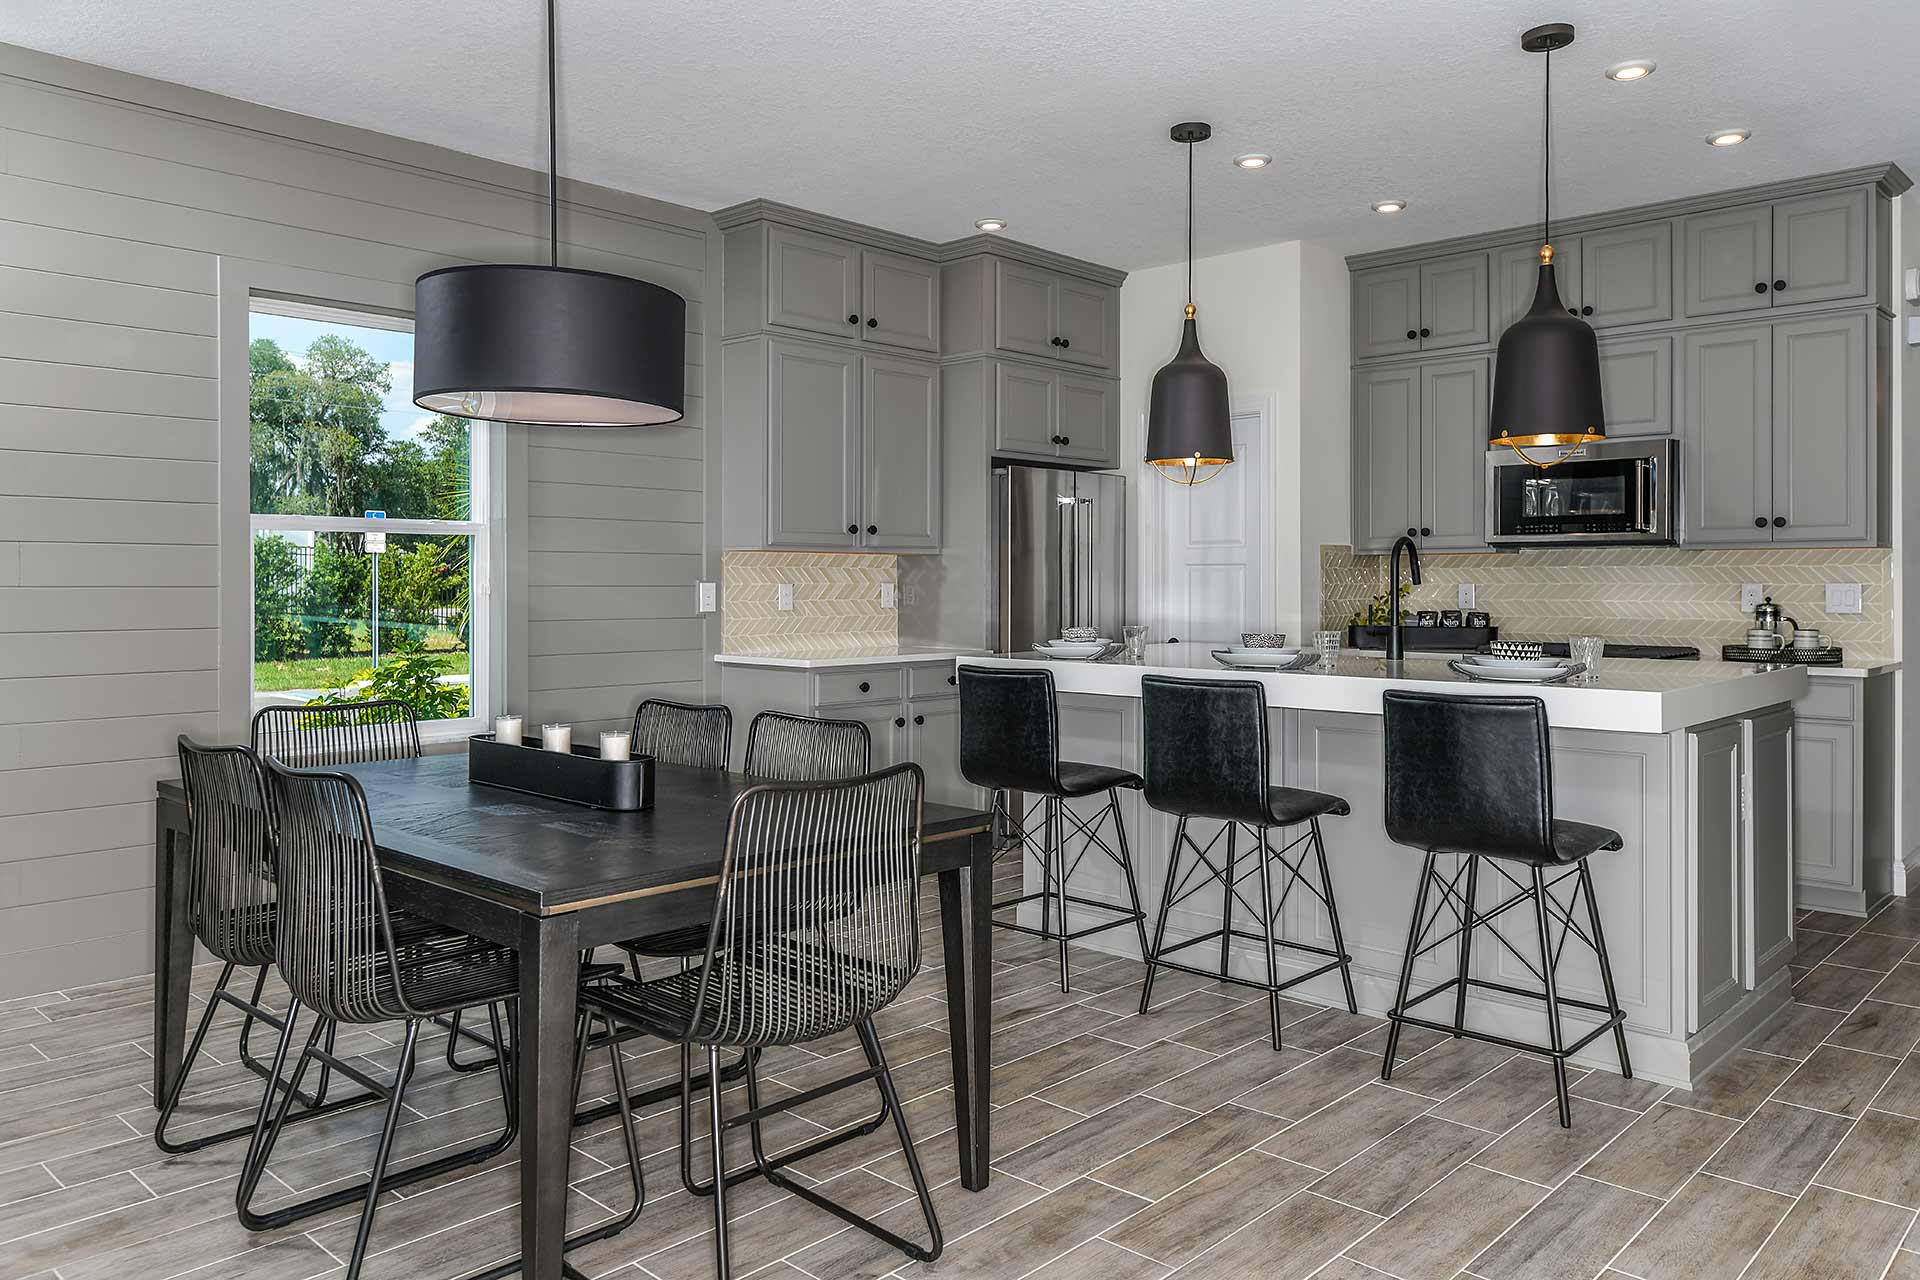 New Tampa  Model Home Southampton in Sandhill Ridge, located at 11409 Tanner Ridge Place (Lot 32) Built By Cardel Homes Tampa